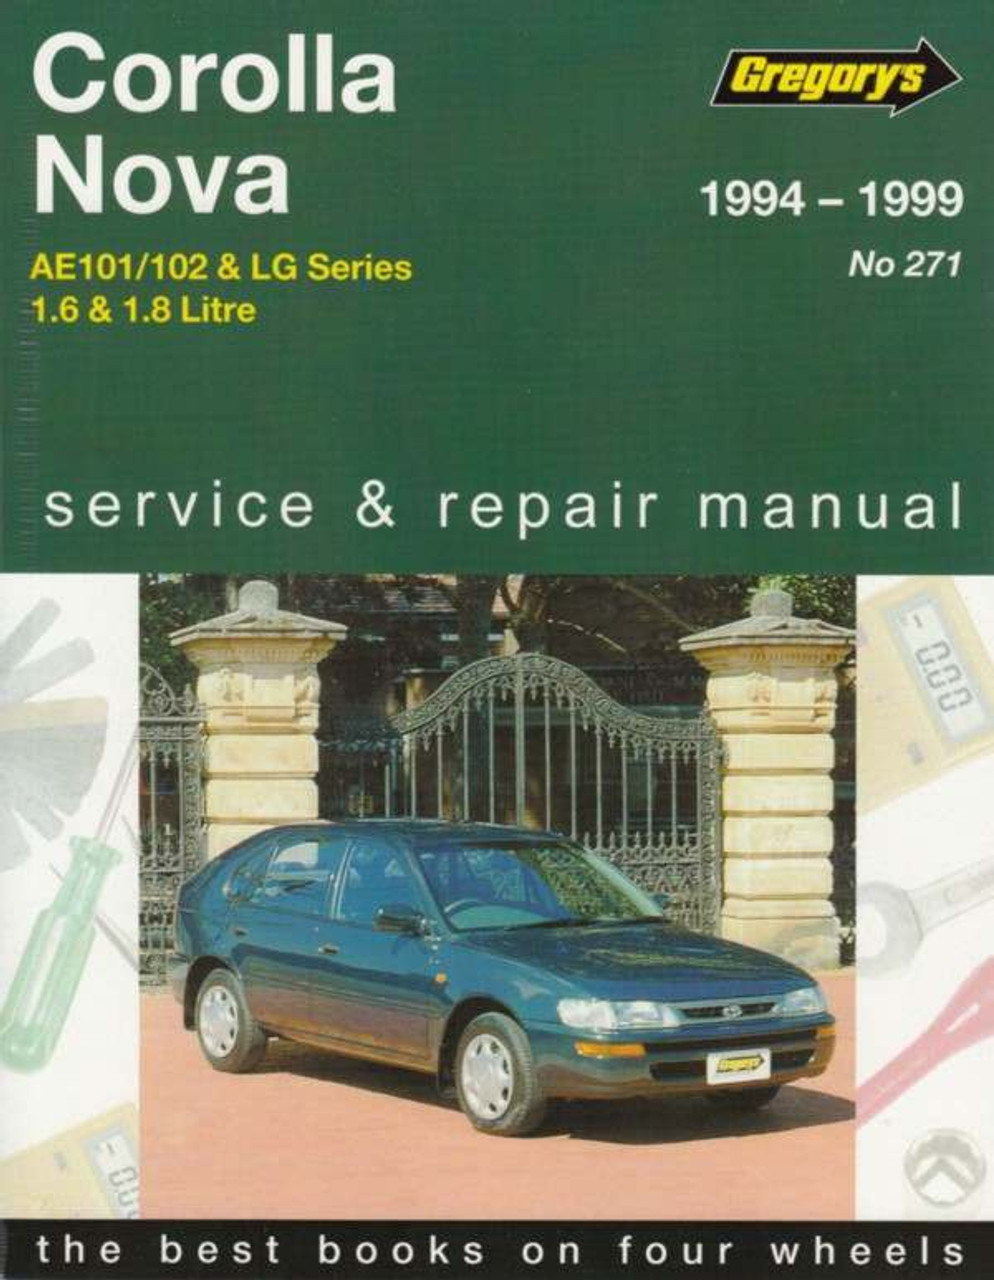 toyota corolla ae101 ae102 amp holden nova lg 1994 1999 rh automotobookshop com au 1999 toyota corolla repair manual free download 1999 toyota corolla repair manual pdf